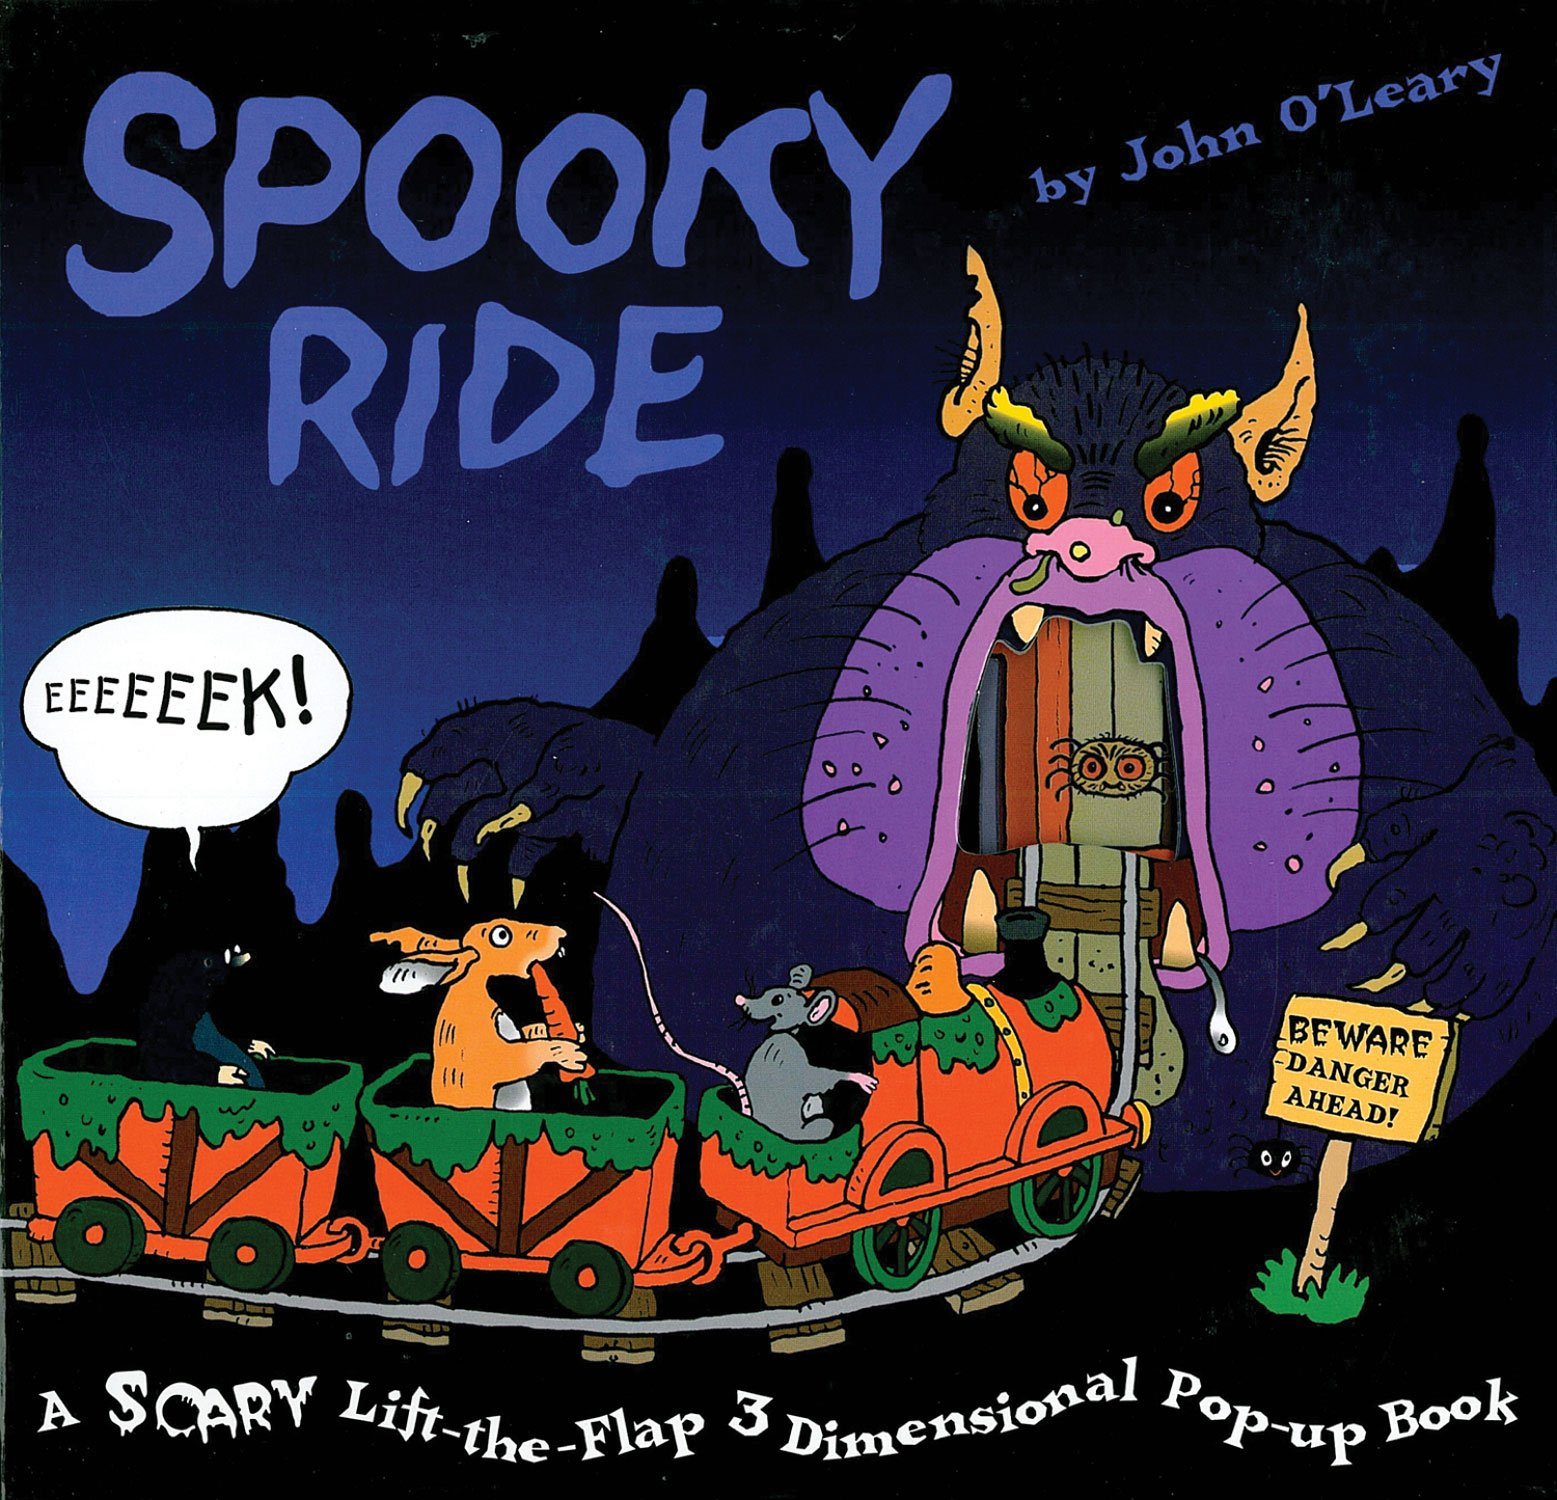 Download Spooky Ride: A Scary Pop-Up Book! (Scary Lift-the-flap 3-d Pop-up Book) pdf